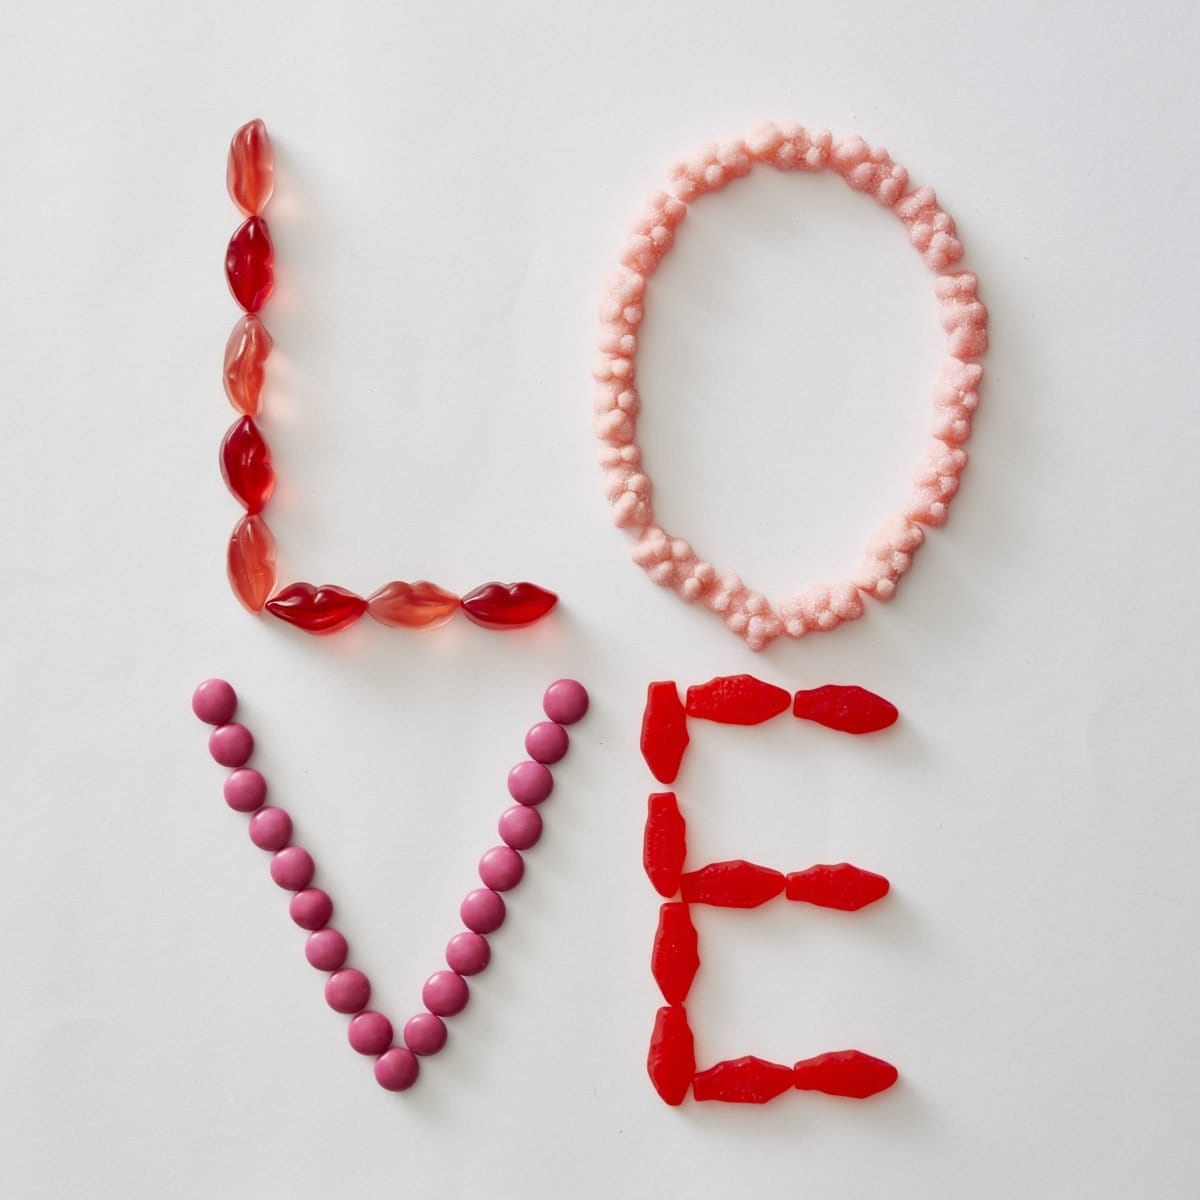 Darcy Miller Designs, L-O-V-E (sweet), After school snack, Valentines, pink candy, red candy, candy art, love note, secret admirer, sweet treat, easy valentine, Darcy Miller, DIY